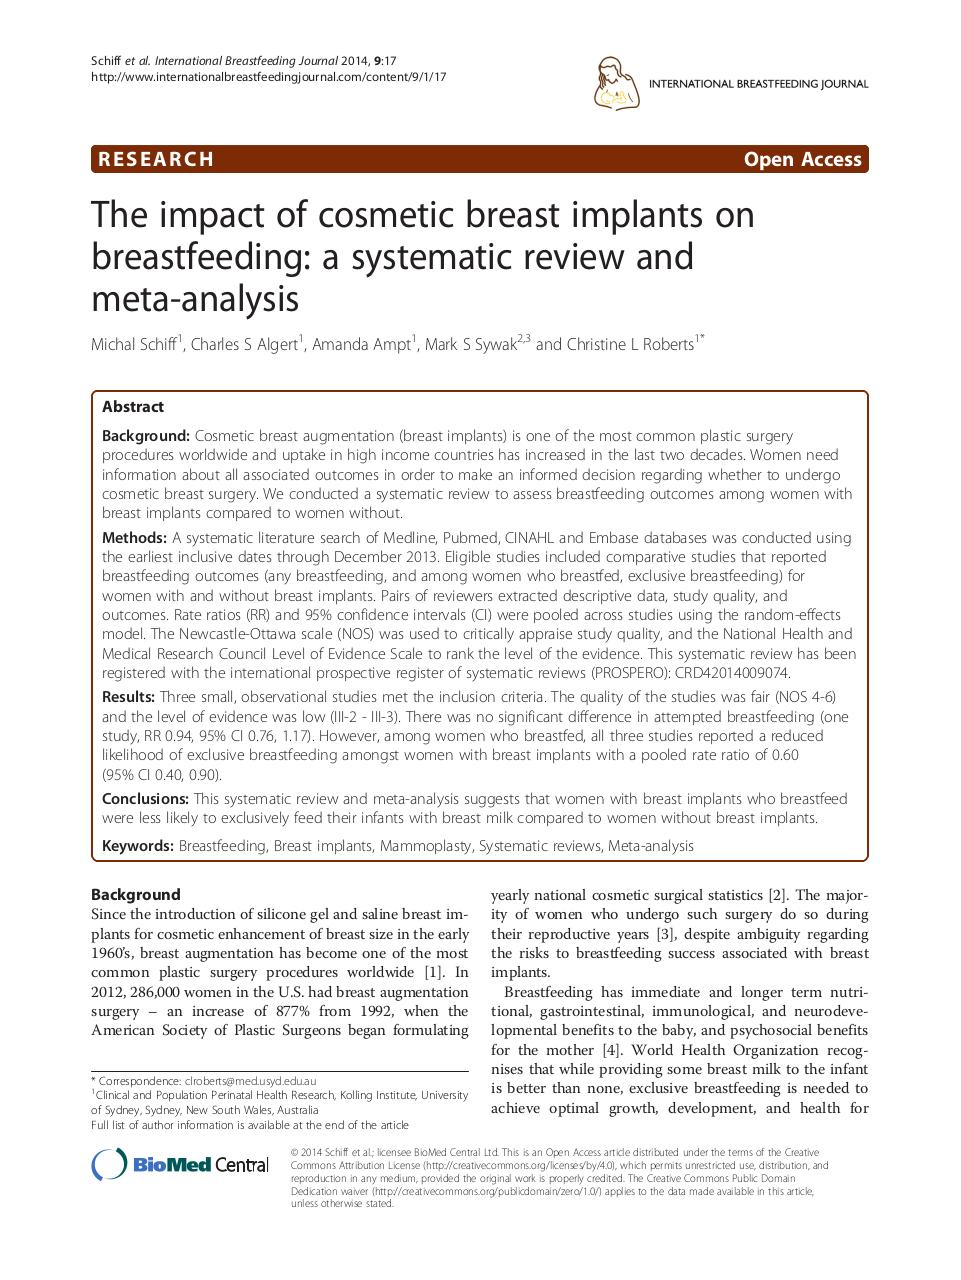 The impact of cosmetic breast implants on breastfeeding: a